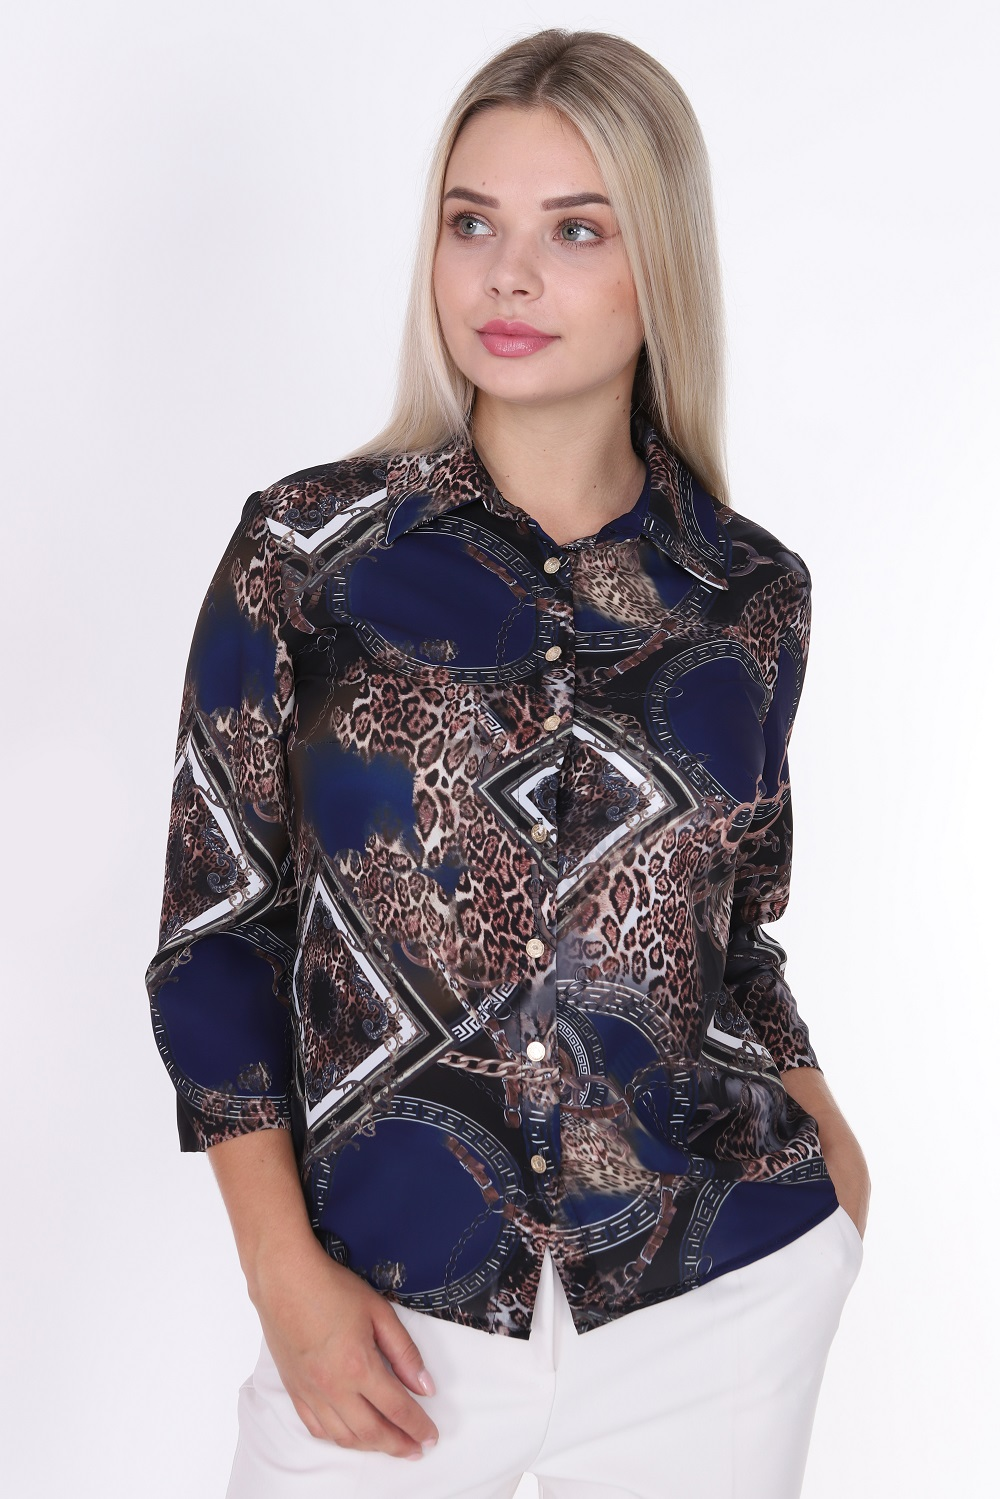 Leopard Patterned Buttoned Navy Blue Blouse